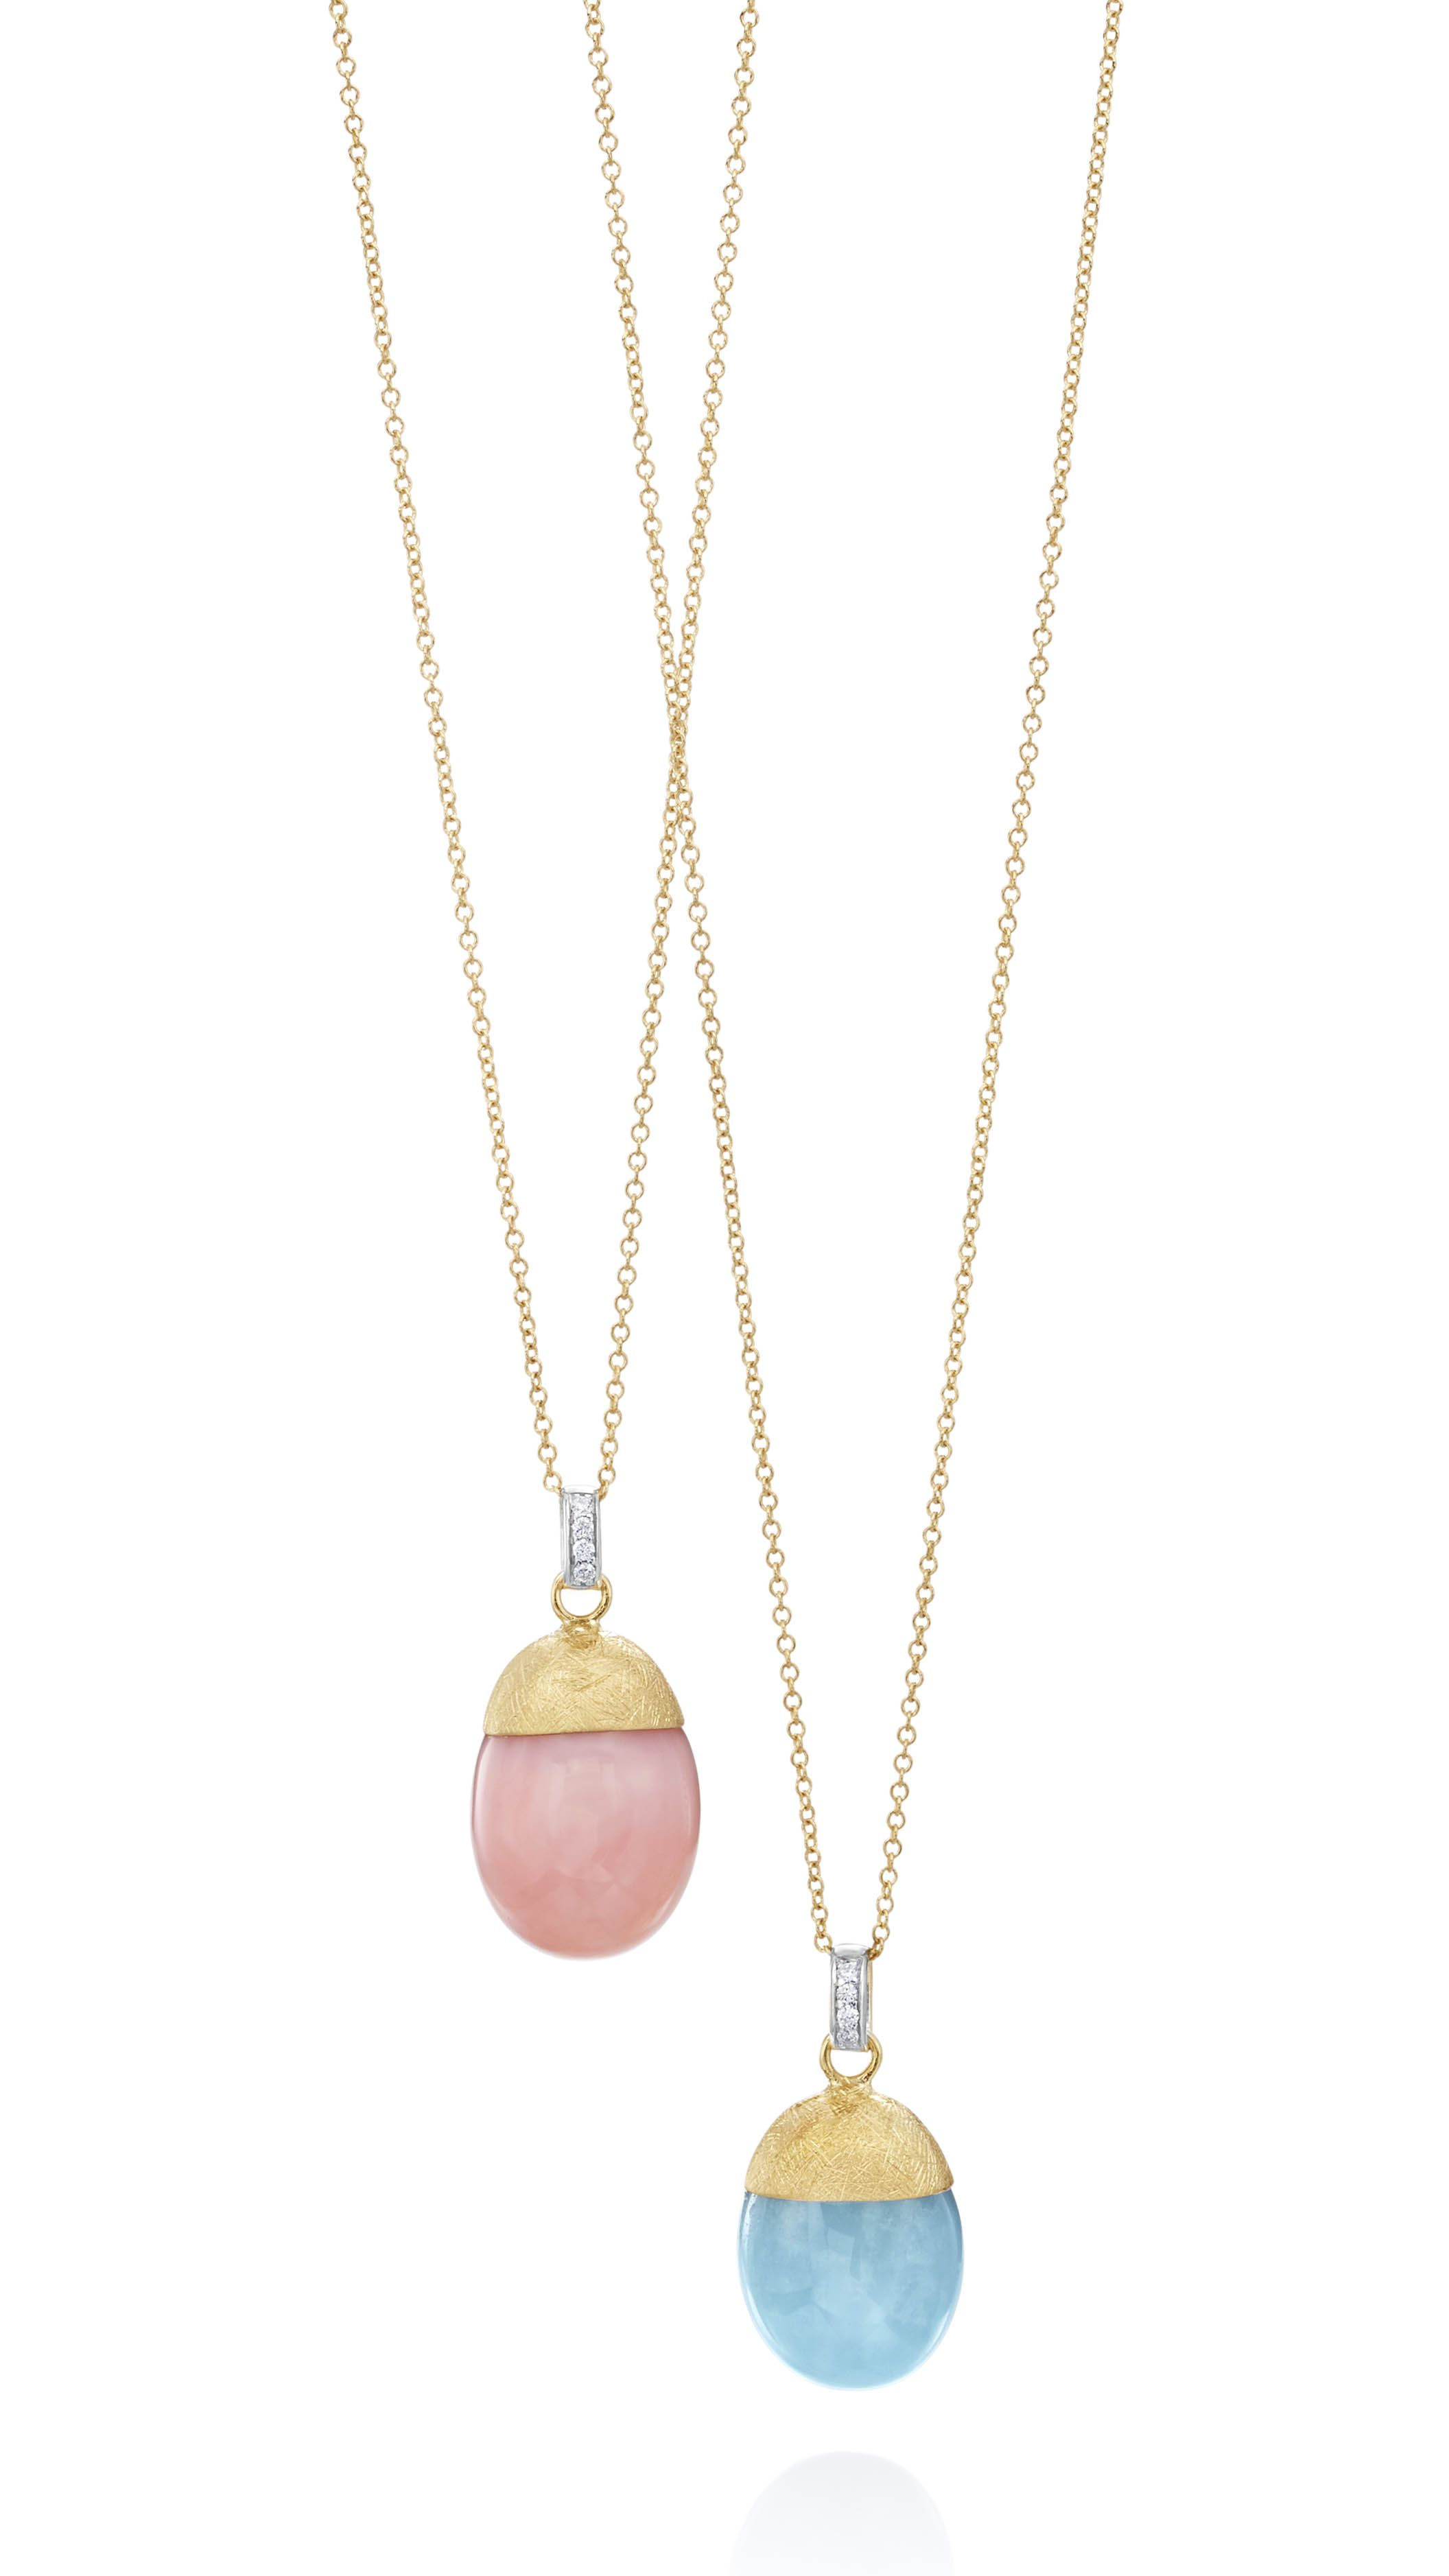 up pendant necklaces abby aquamarine gold power close jewellery tourmaline mosseri and in